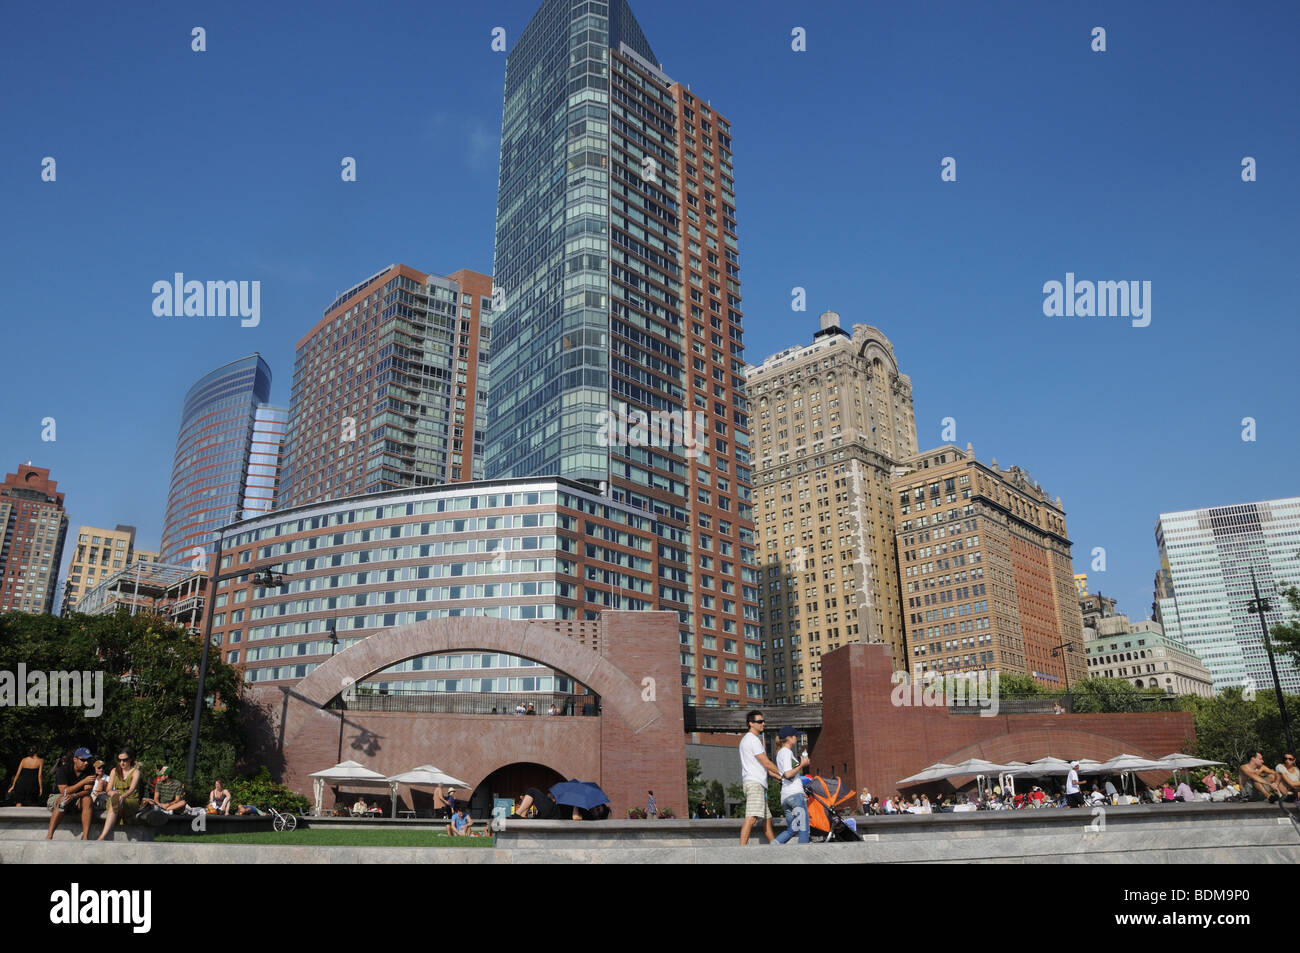 Apartment Buildings And The Ritz Carlton Hotel Overlooki A Park In Battery  Park City, Lower Manhattan